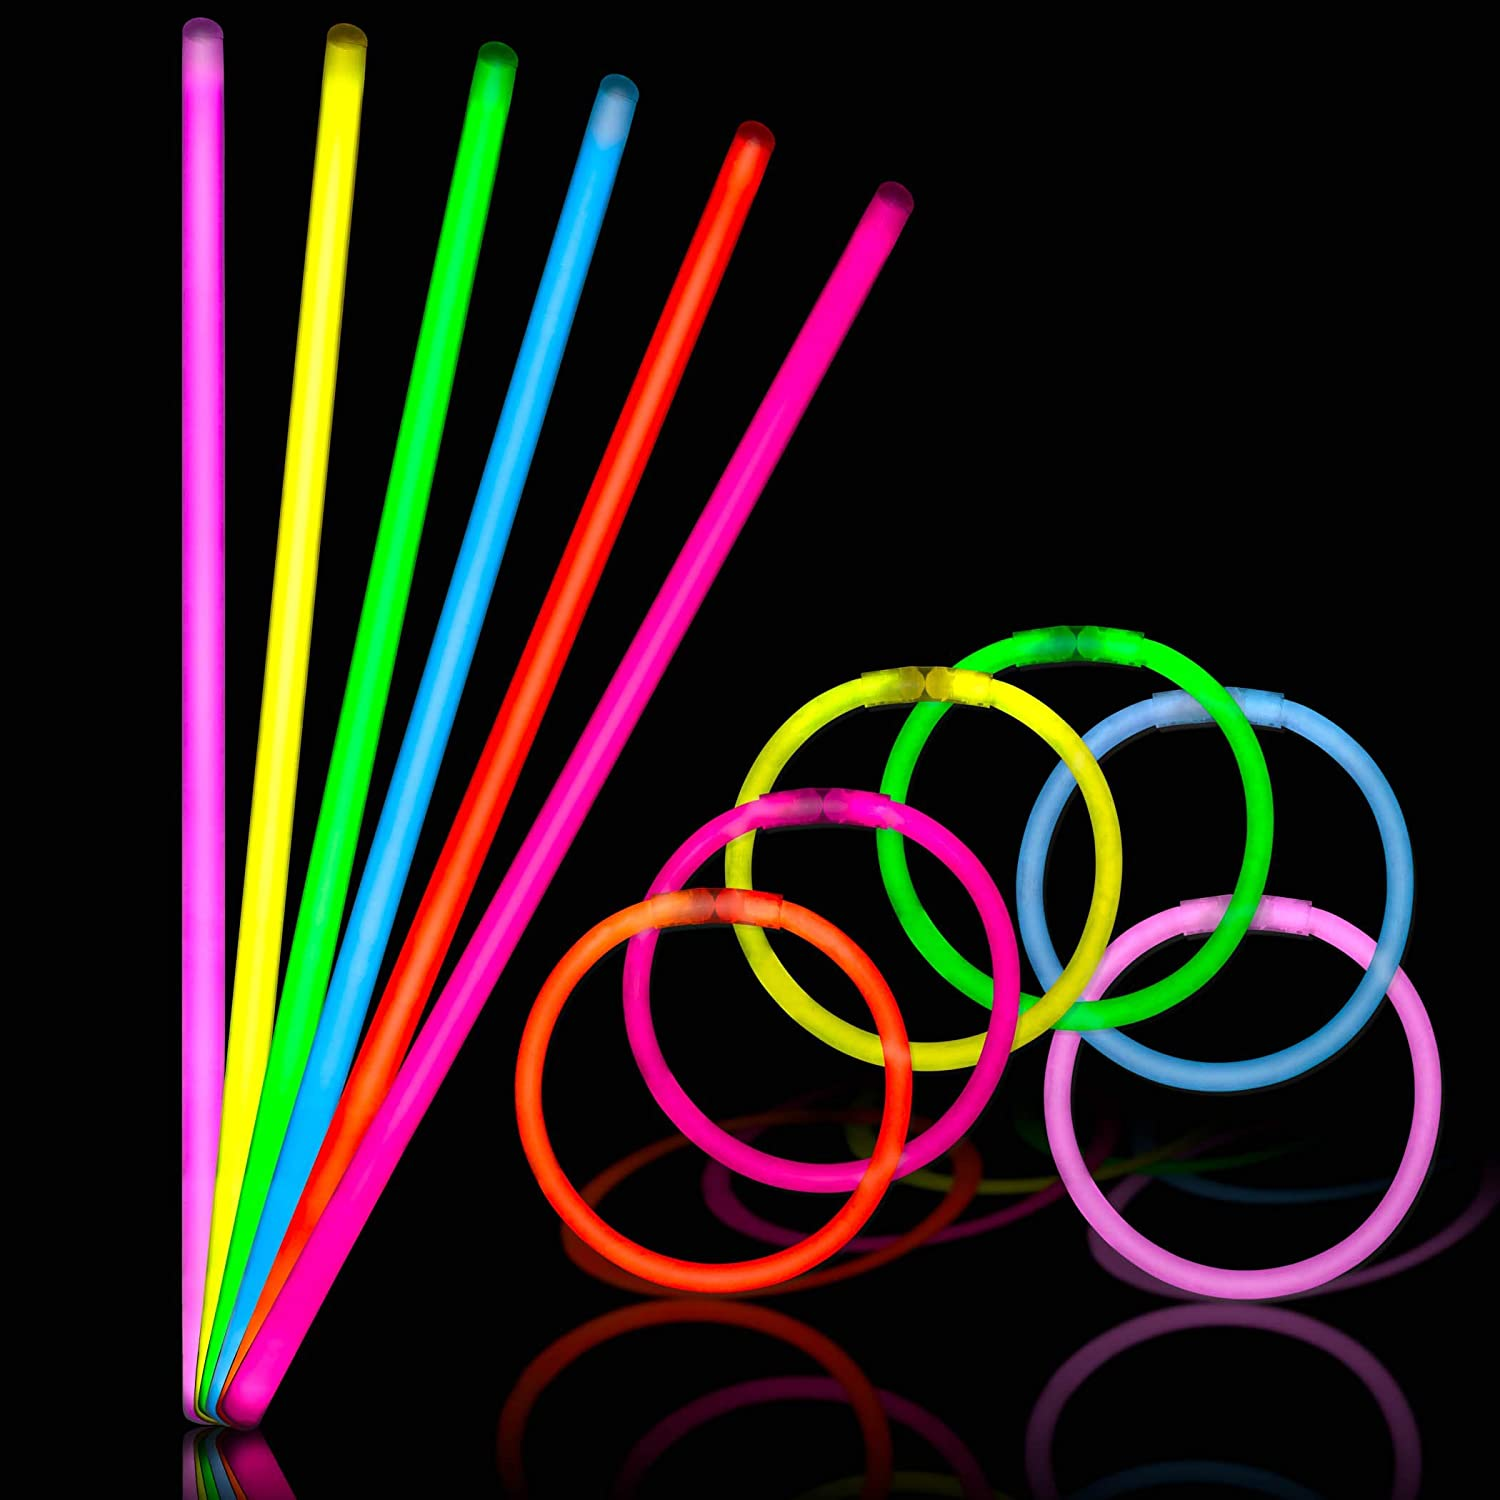 150 Glow Sticks Bulk Pack Party Glowers 8 Inch Ultra Bright Glowsticks Necklaces And Bracelets Glow Stick 10 Hour Duration Mixed Colors With 150 Connectors In 3 Tubes